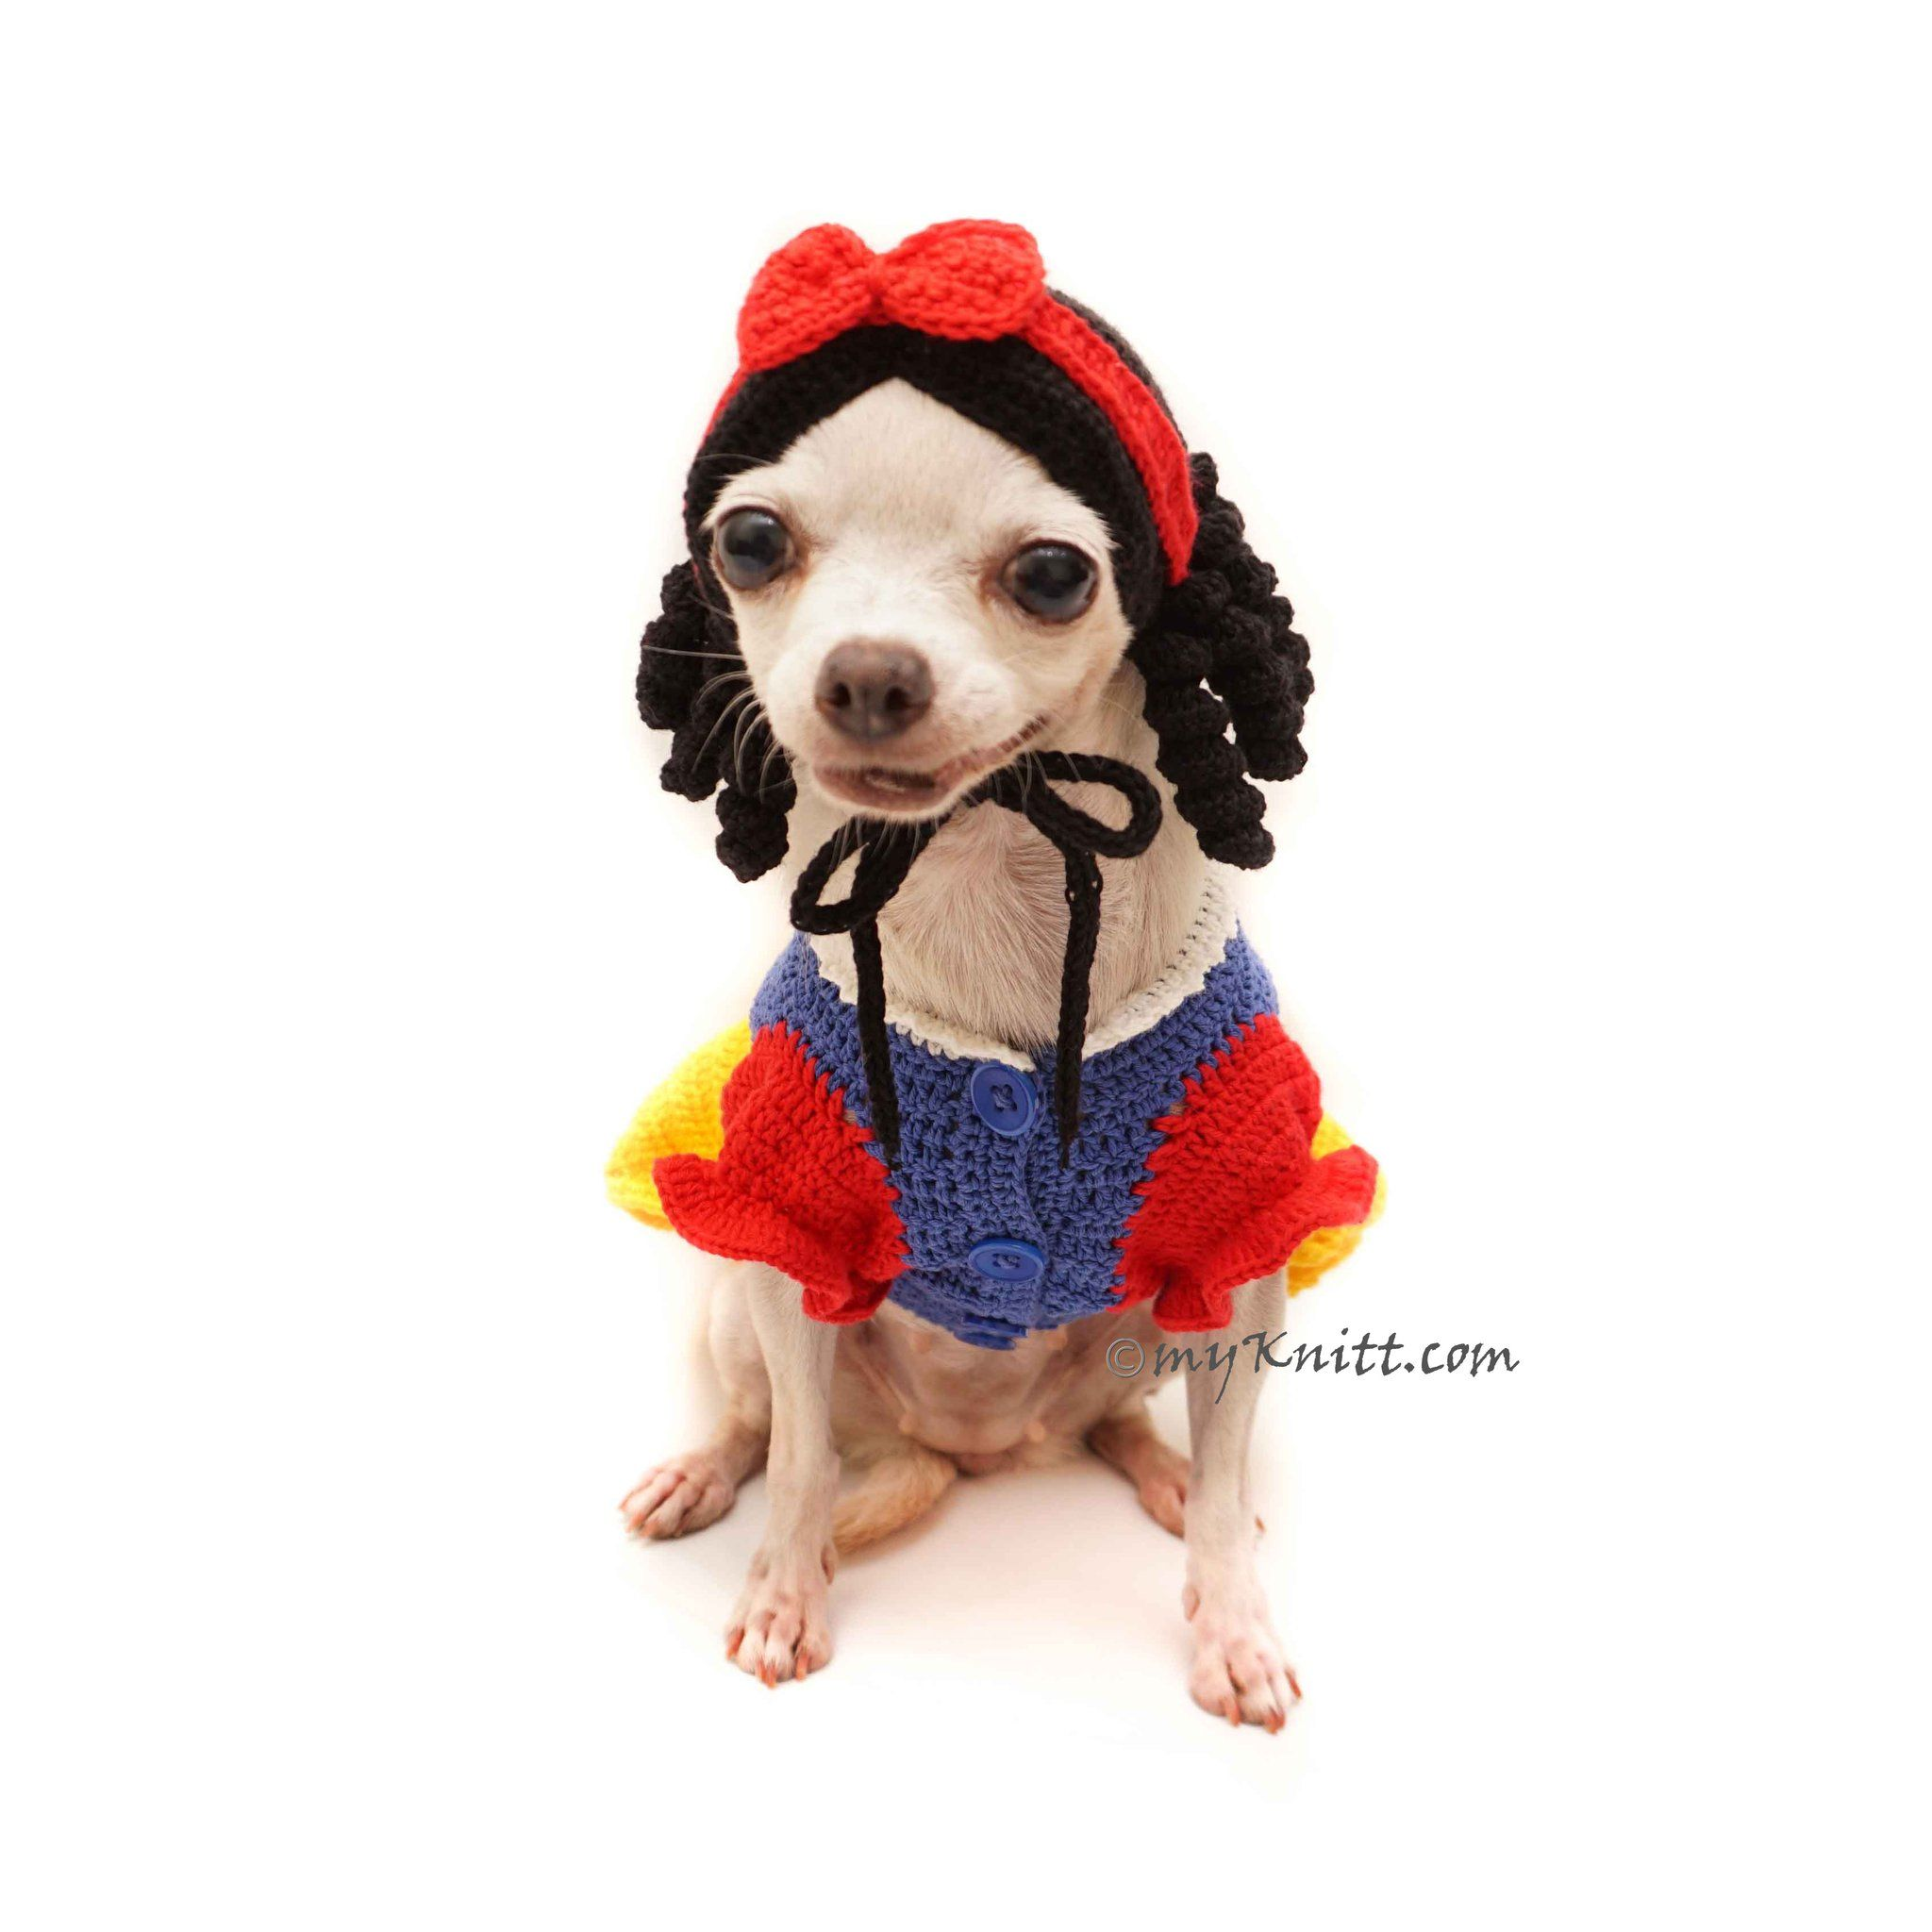 Snow White Dog Costume, Disney Dog Costumes, Crochet Dog Hat DF123 is part of Snow White Dog Costume Ebay - Snow White Dog Costume with Crochet Dog Hat  Funny Pet Costumes, Disney Dog Costumes  Any Custom Dog Clothes are welcome  Made of 100% cotton yarn material, very soft and comfortable